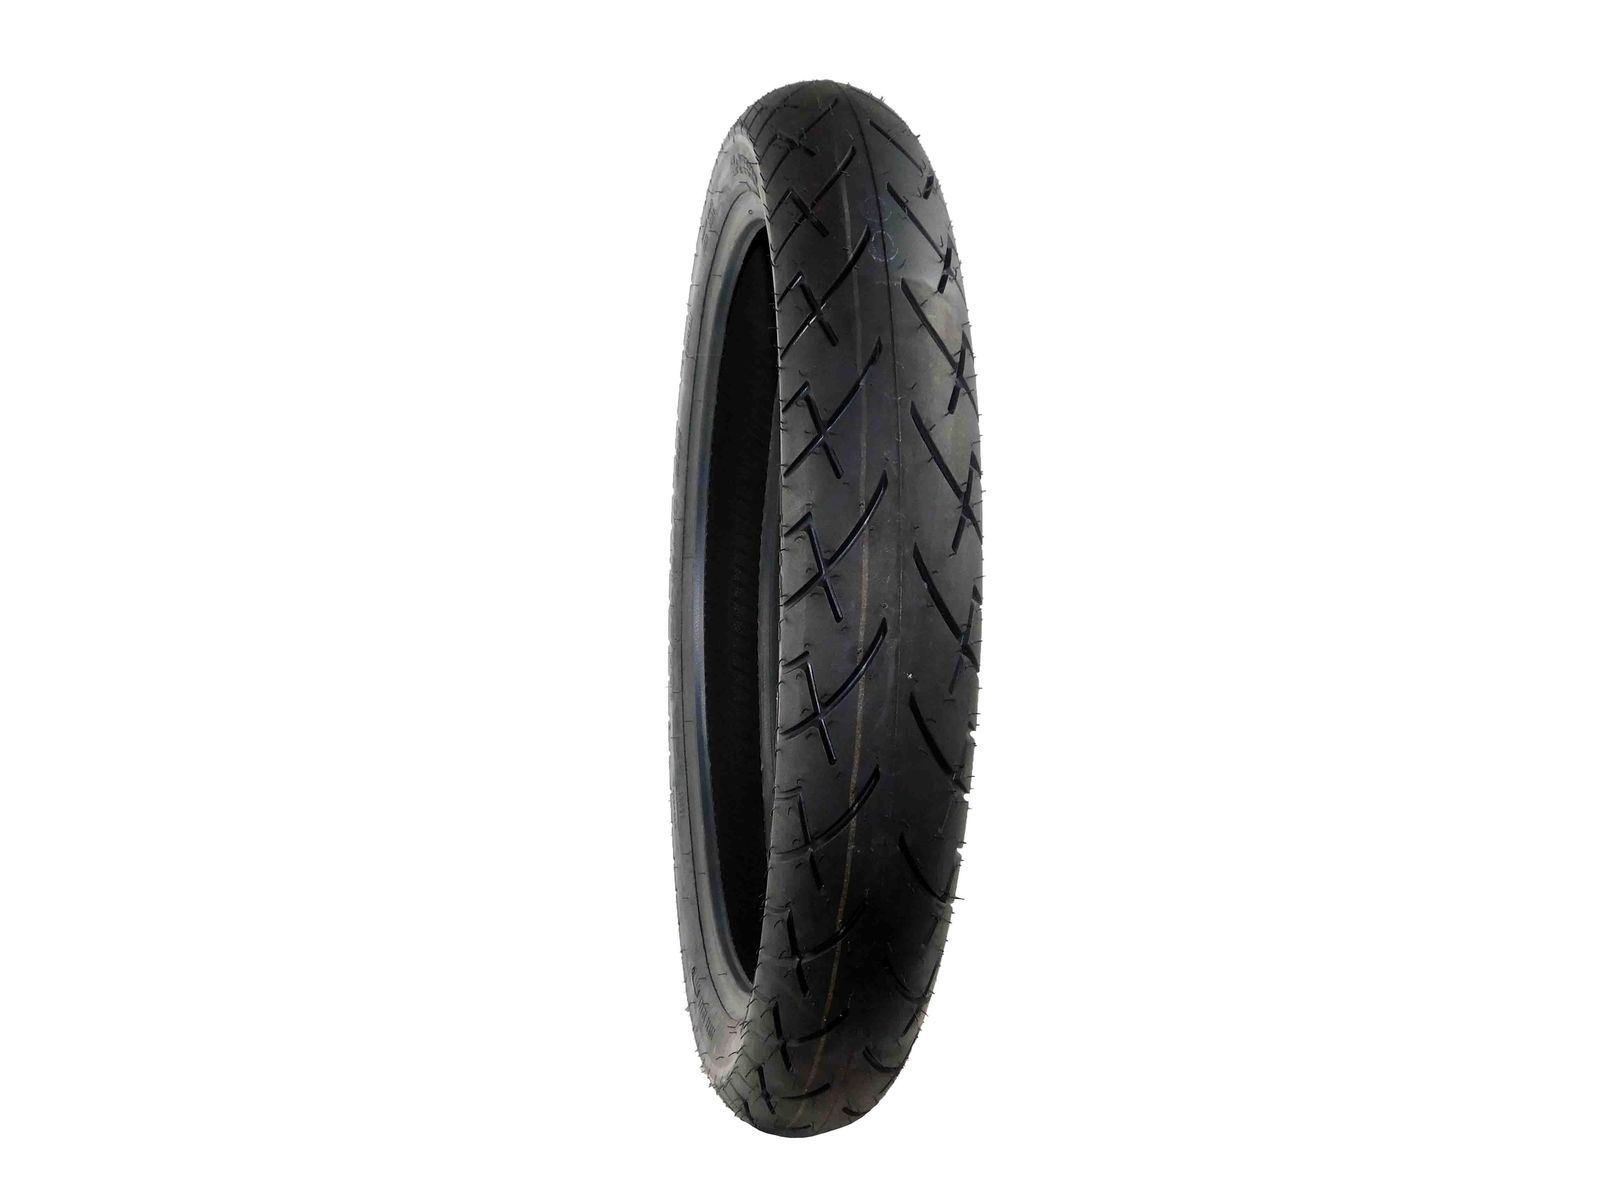 Full-Bore-100-90-19-Front-140-90-15-Rear-Set-Cruiser-Motorcycle-Tires-image-2